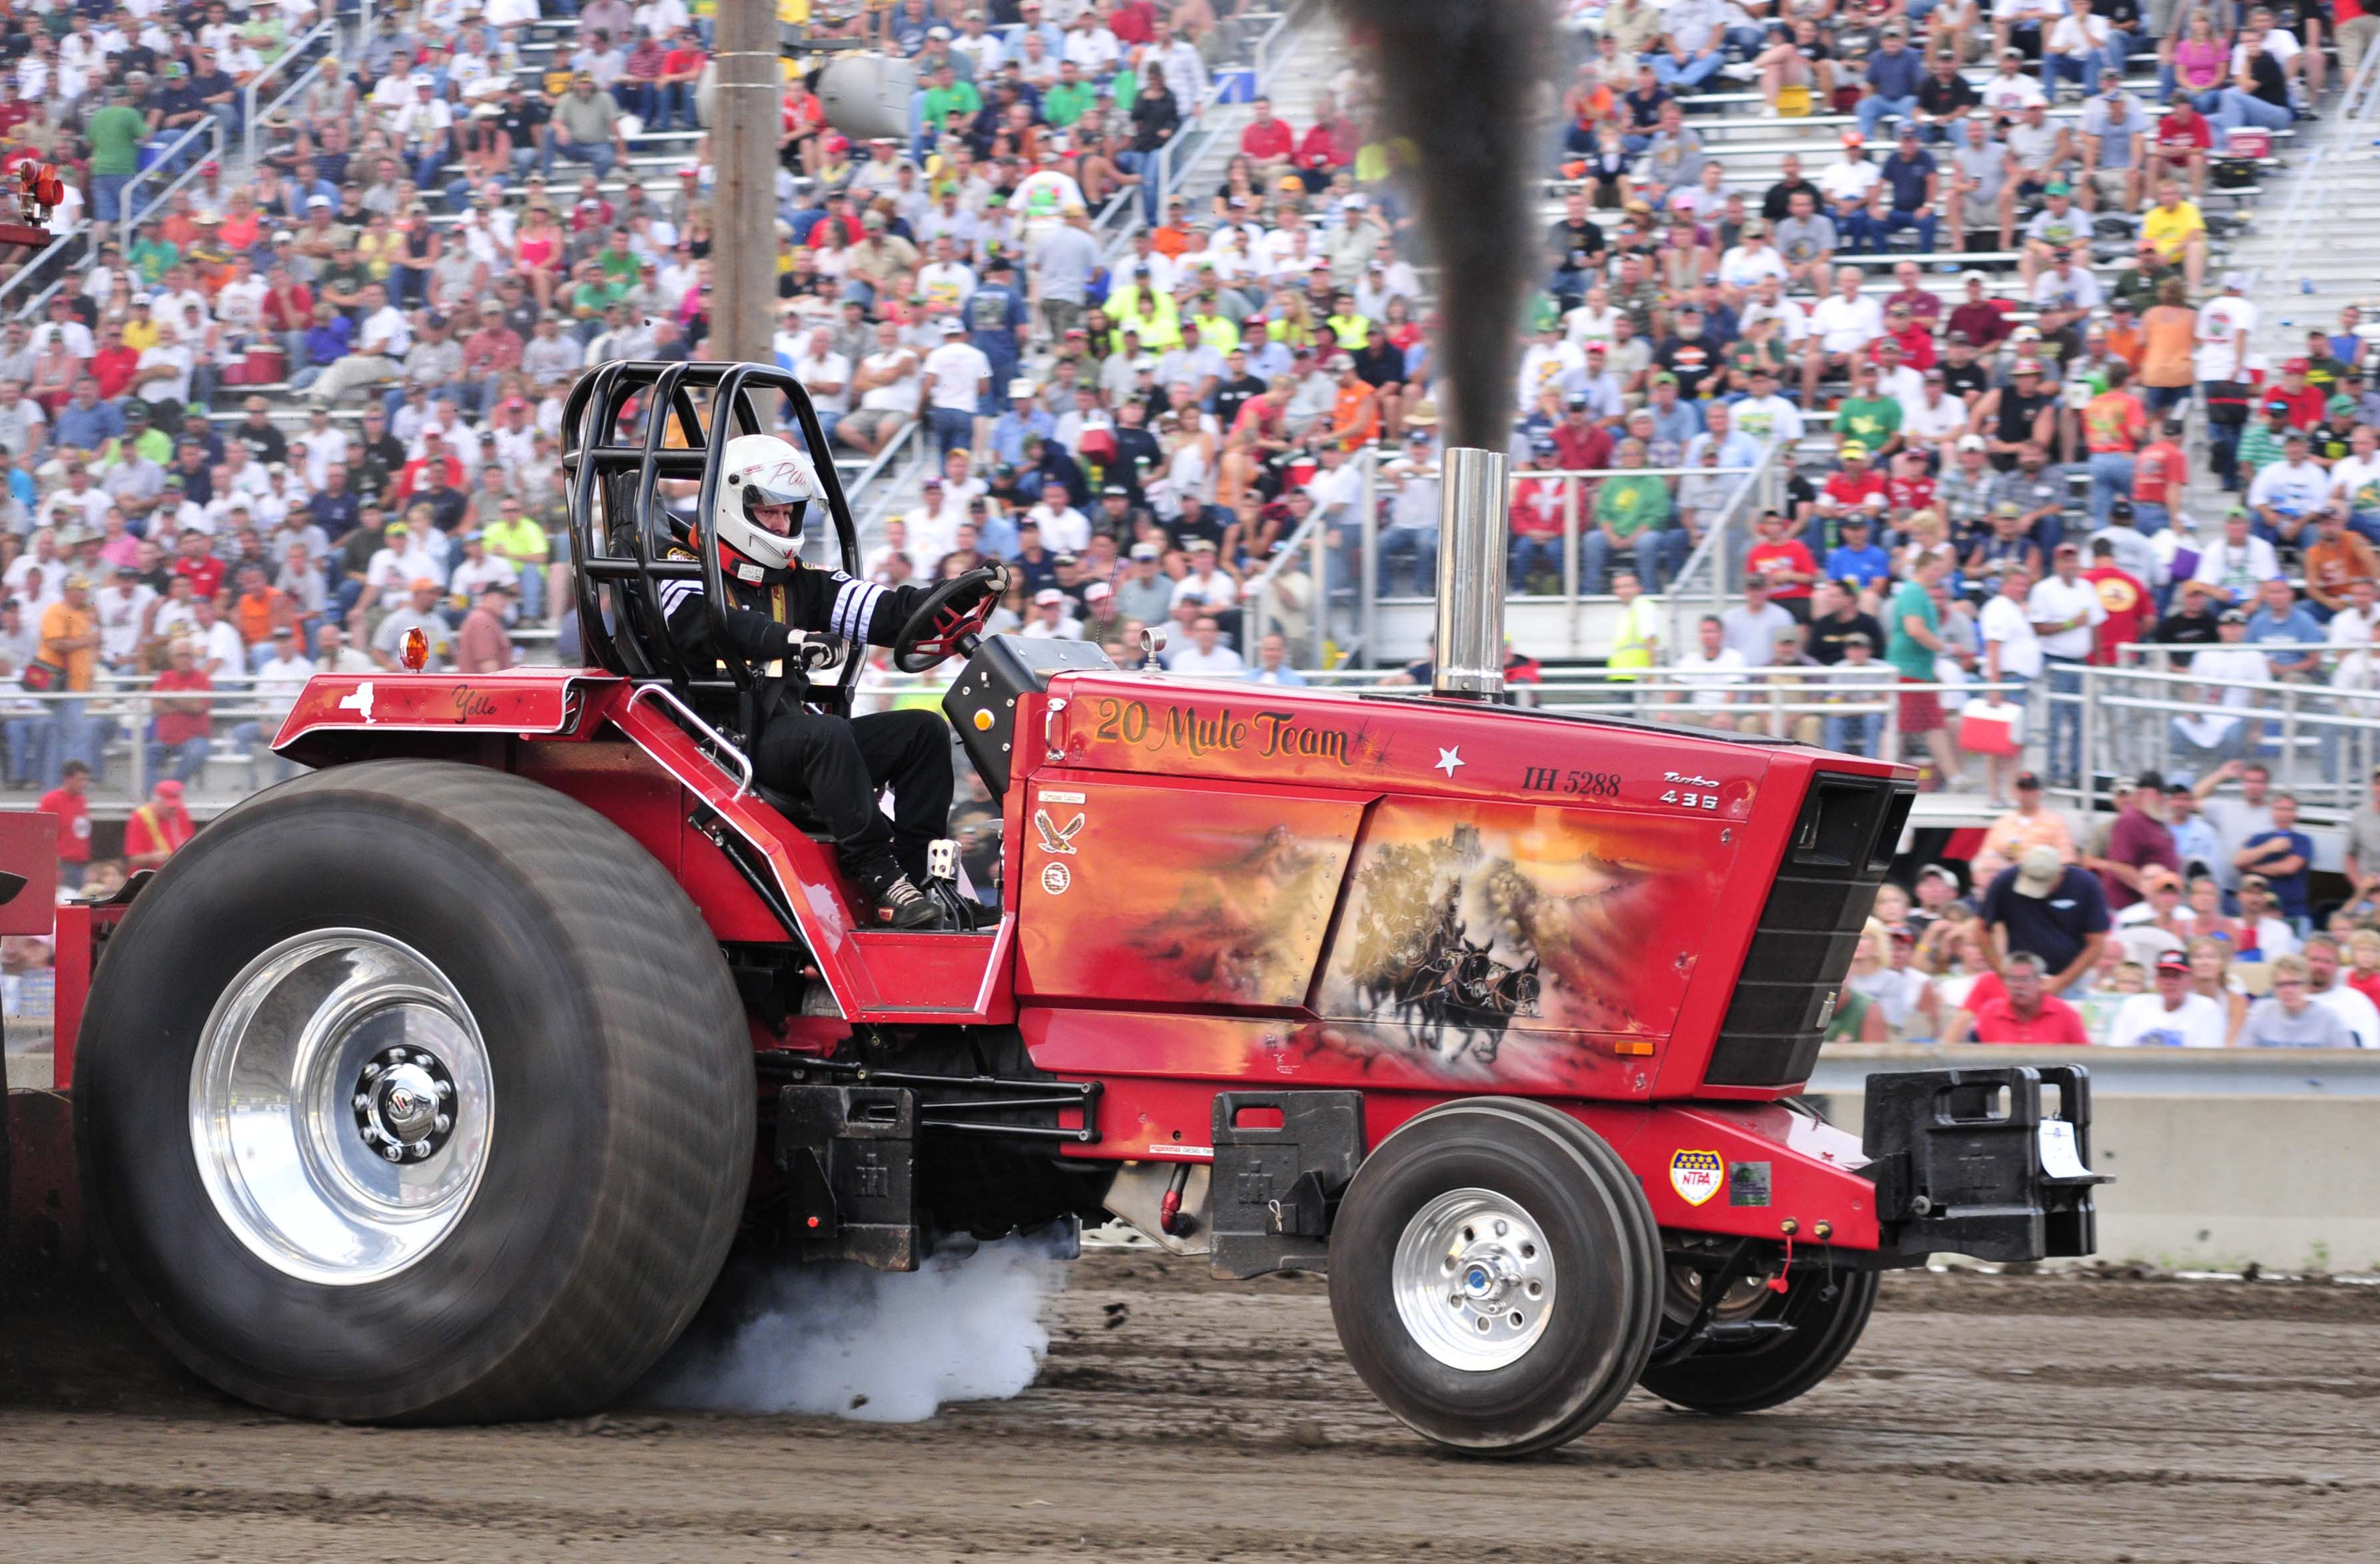 Bowling Green Tractor Pull 20 Mule Team Bowling Green Oh Tractor